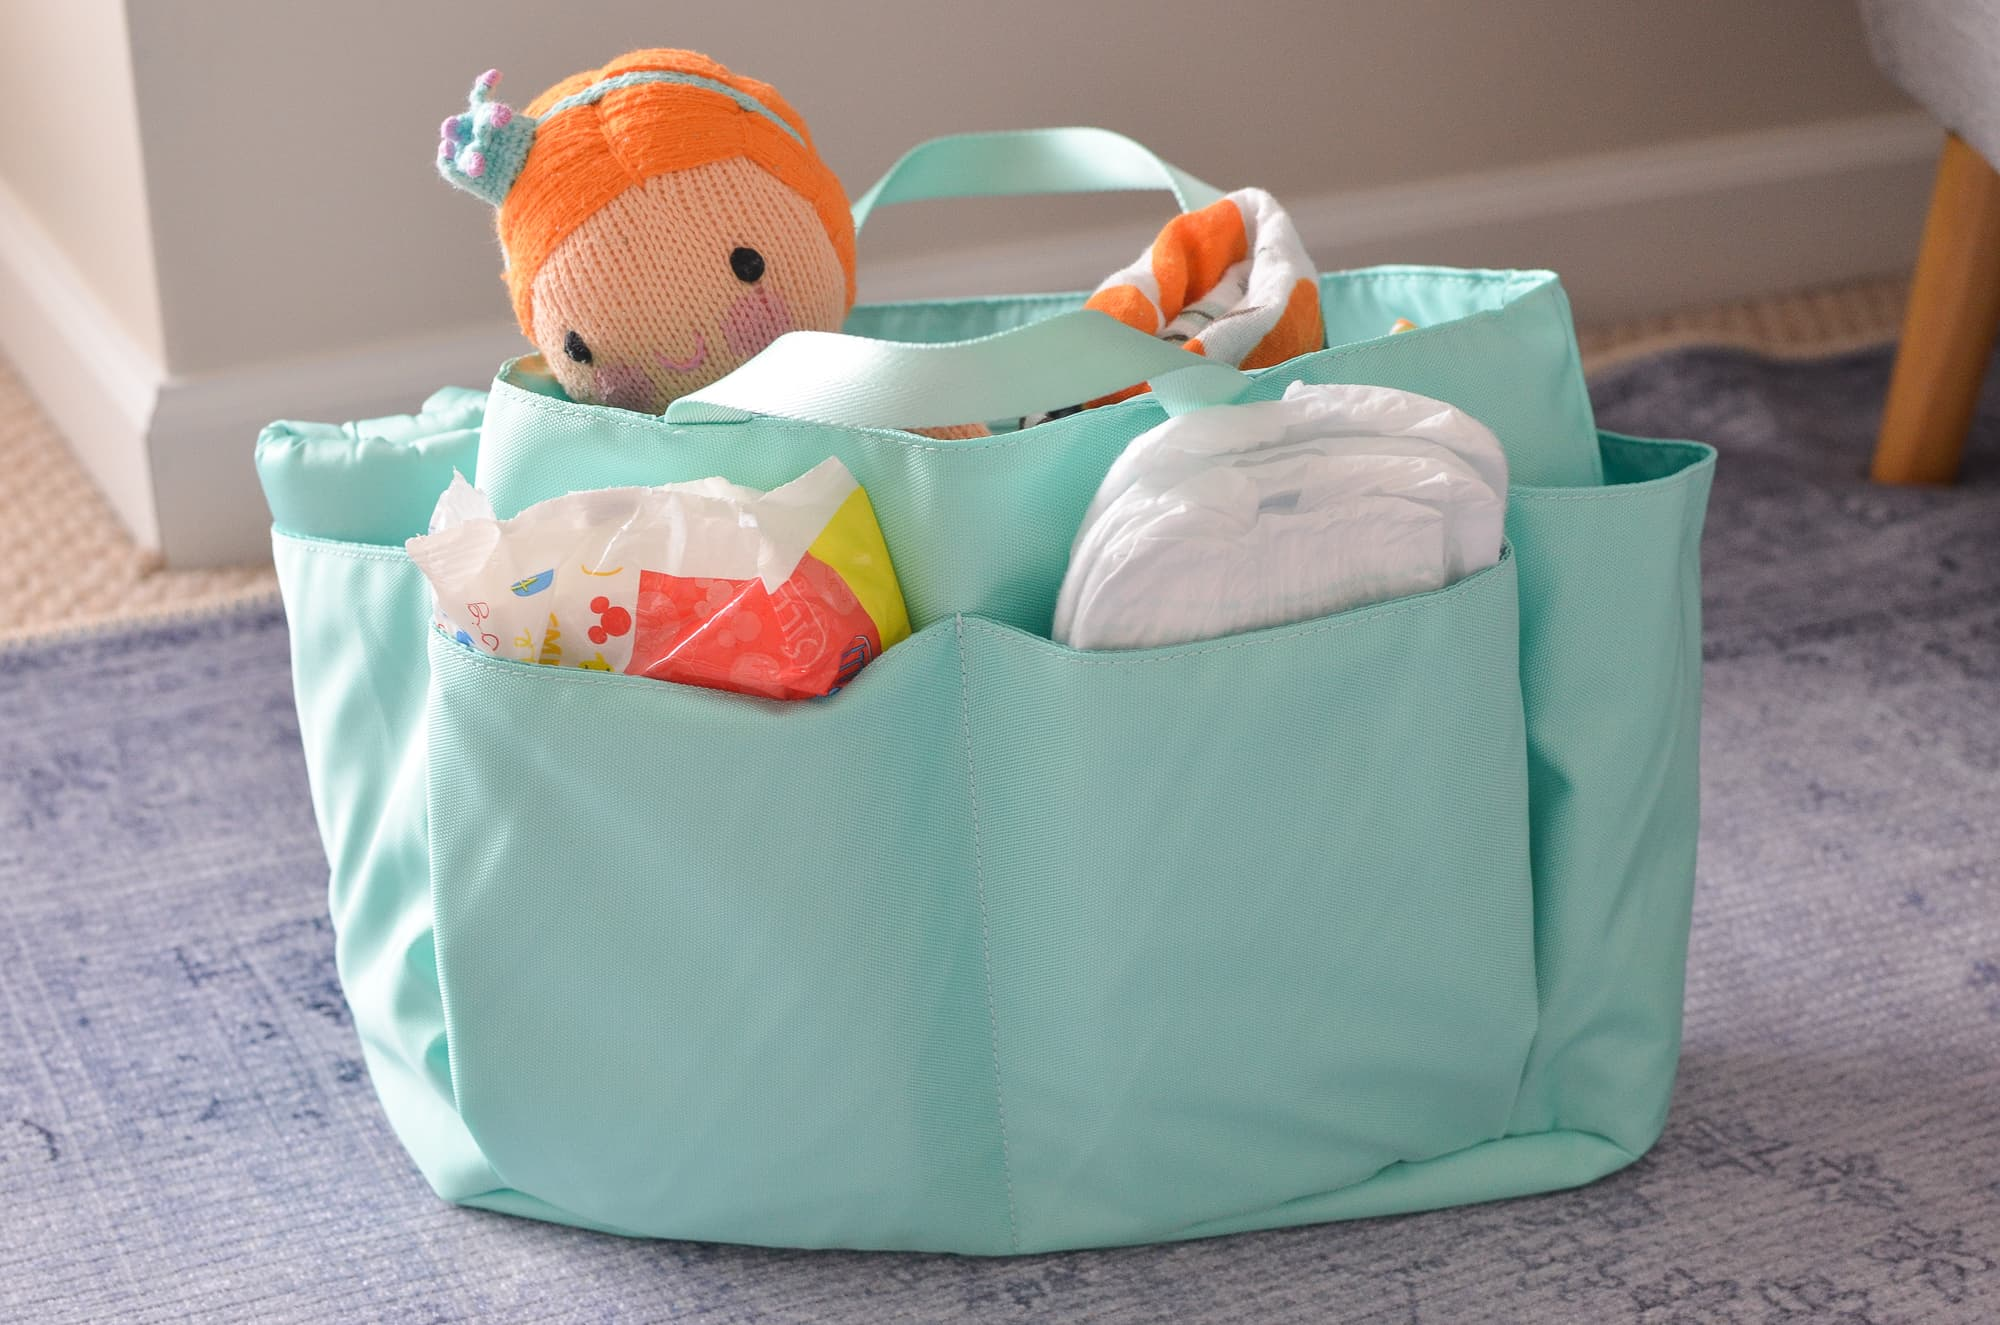 Keeping my diaper bag organized | Momma Society